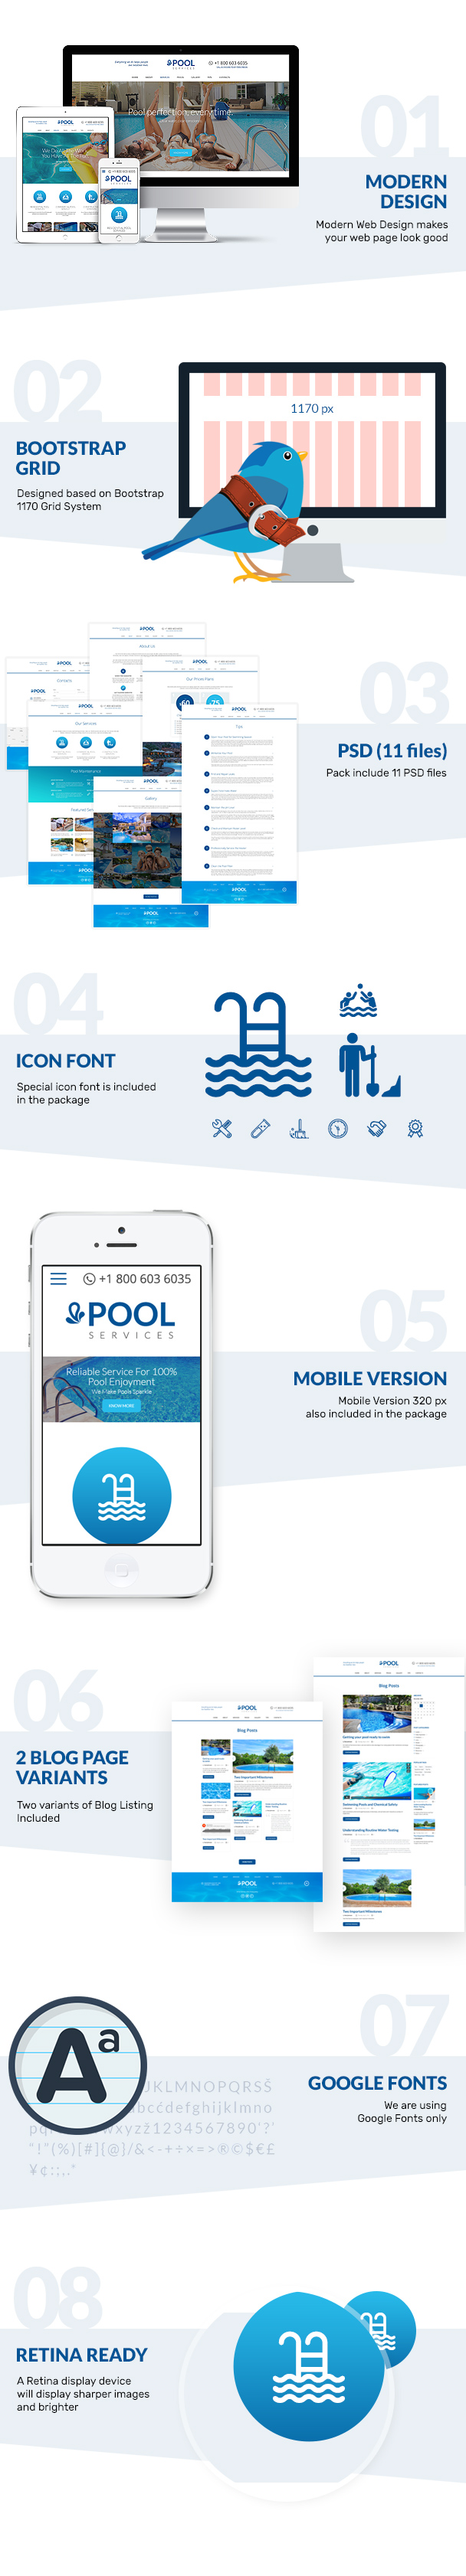 Presentation of Pool Services Free Psd Template features